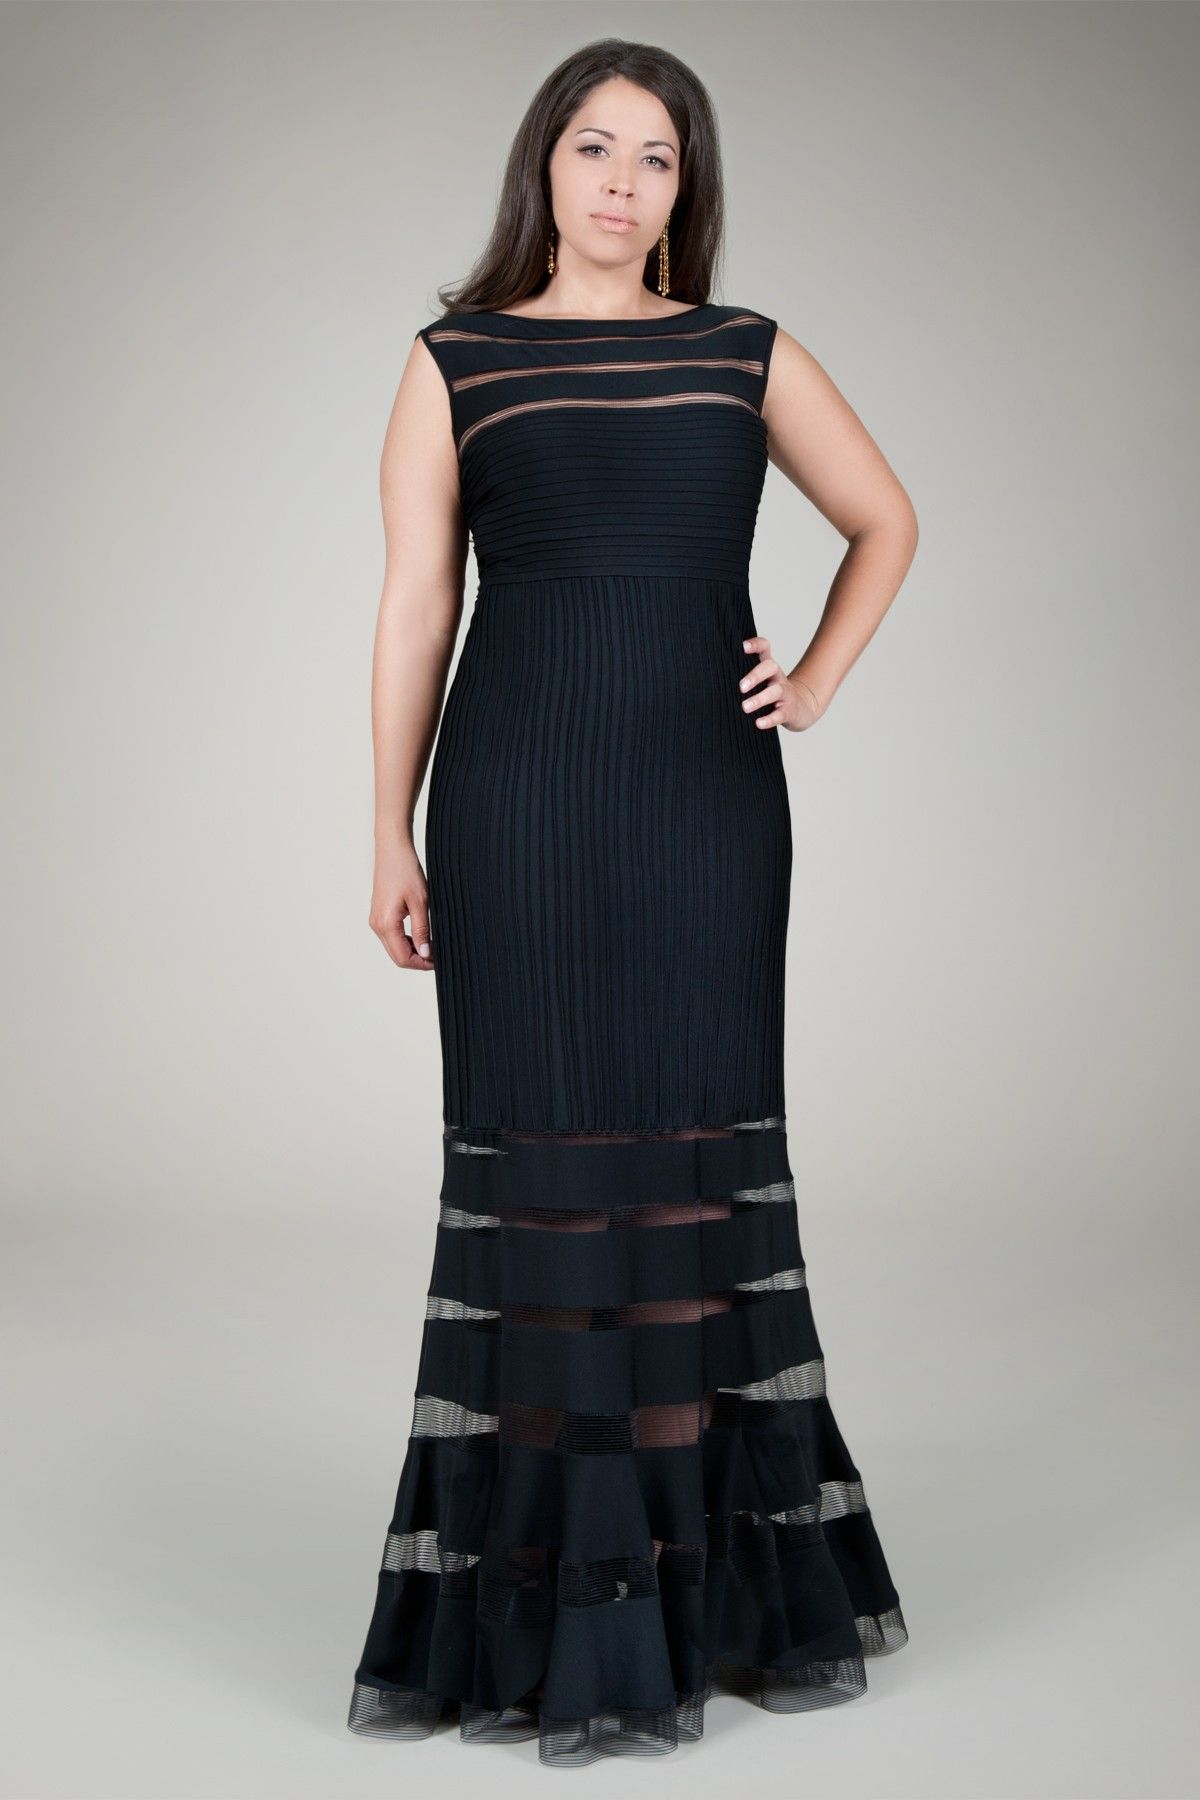 Plus Size Evening Dresses Formal Plus Size Ball Gowns By